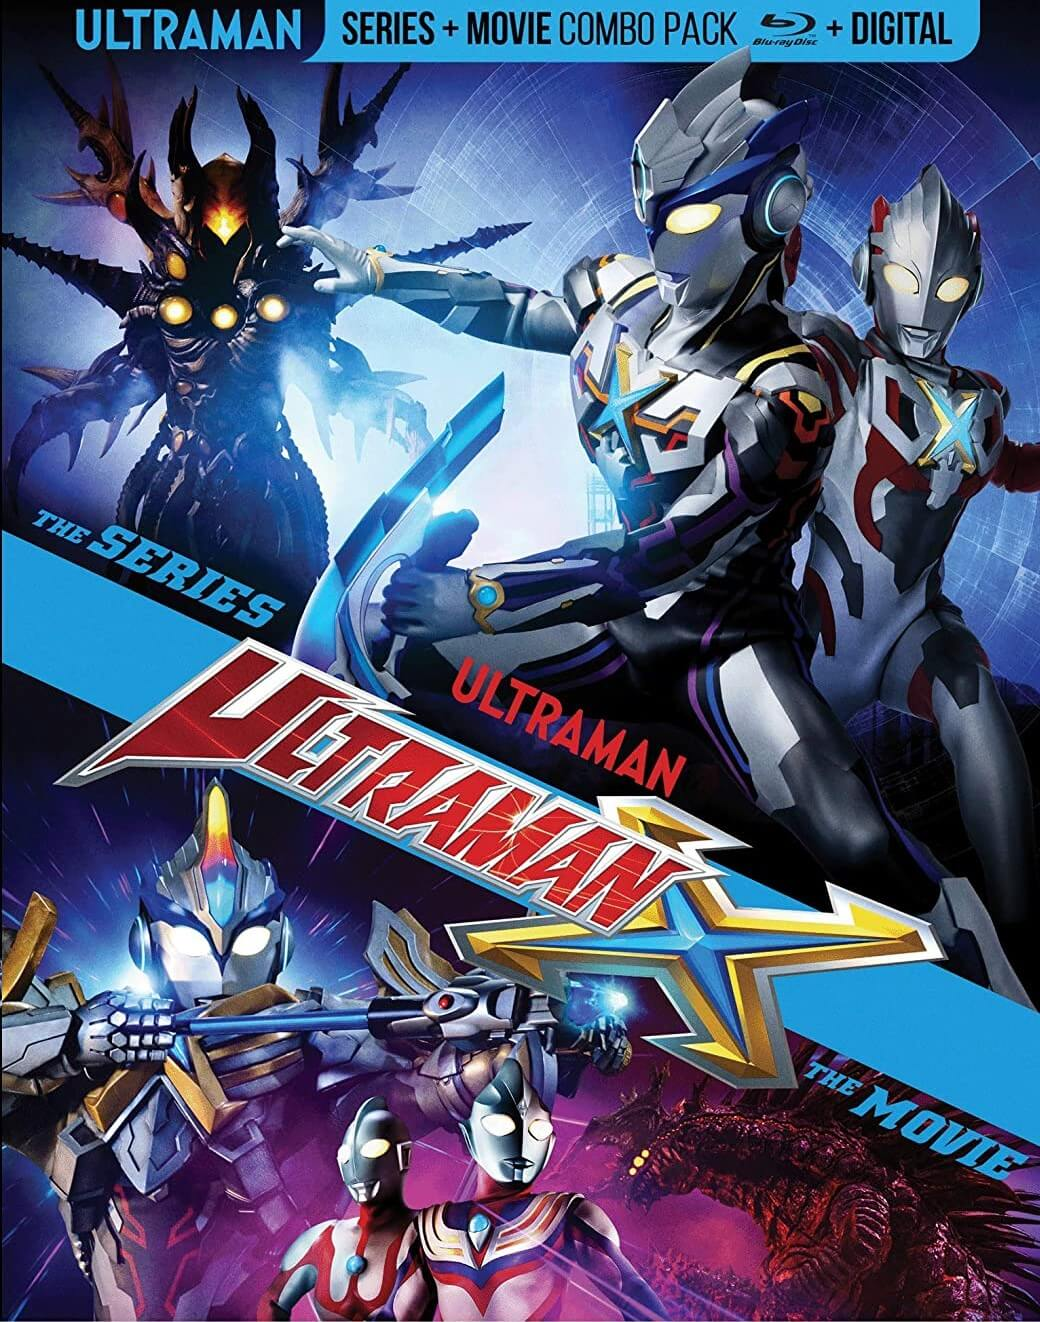 FIRE UP YOUR SPARK DOLL!  ULTRAMAN X:THE COMPLETE SERIES + MOVIE ARRIVES